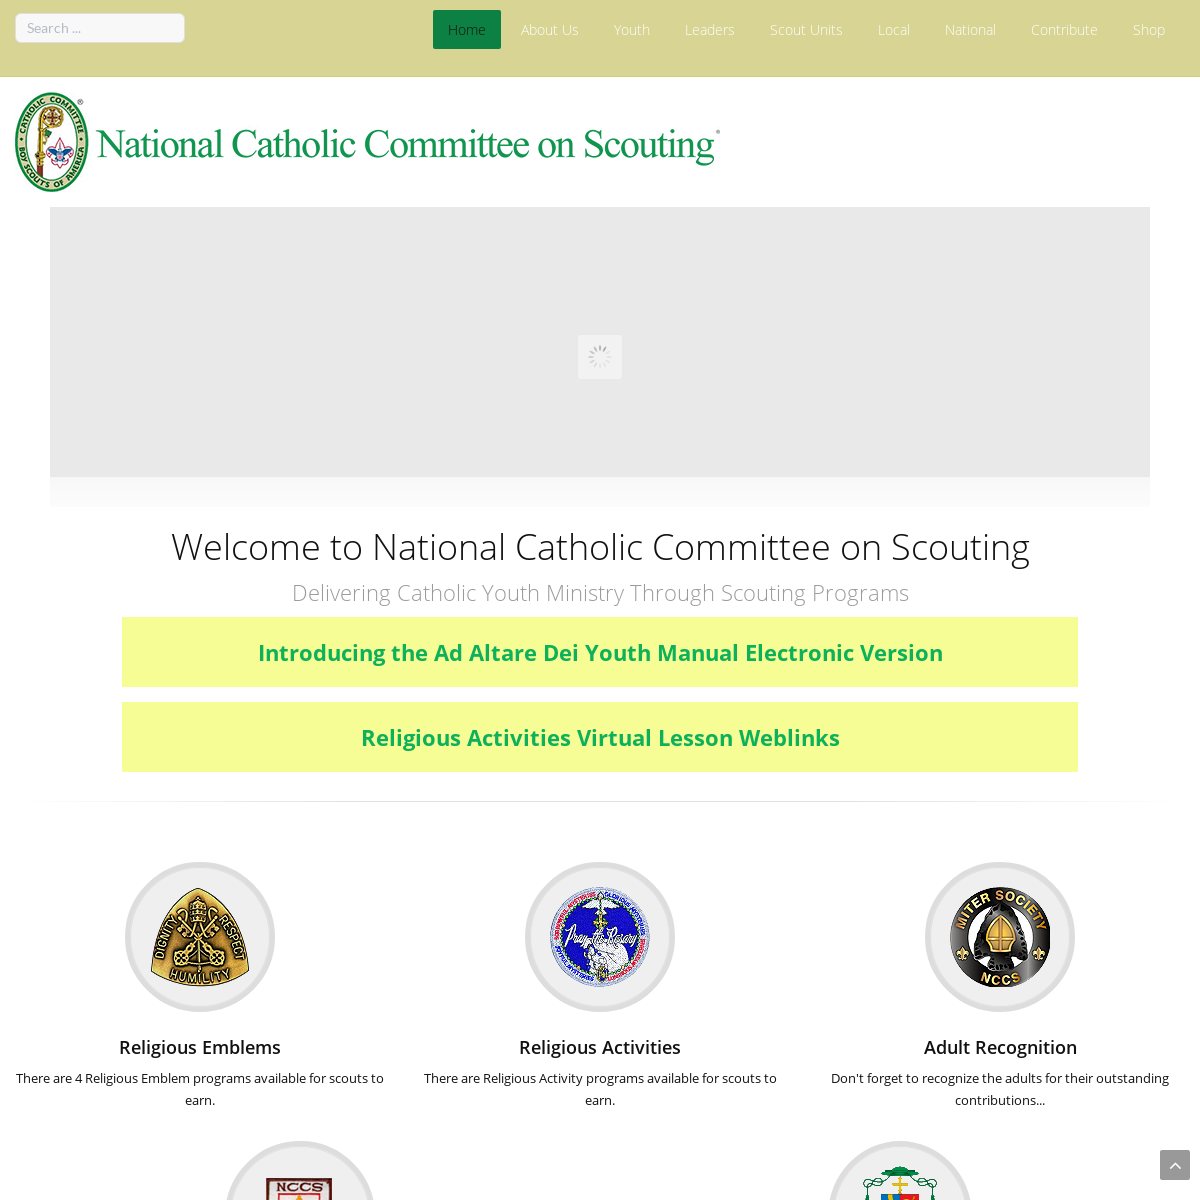 National Catholic Committee on Scouting - Home